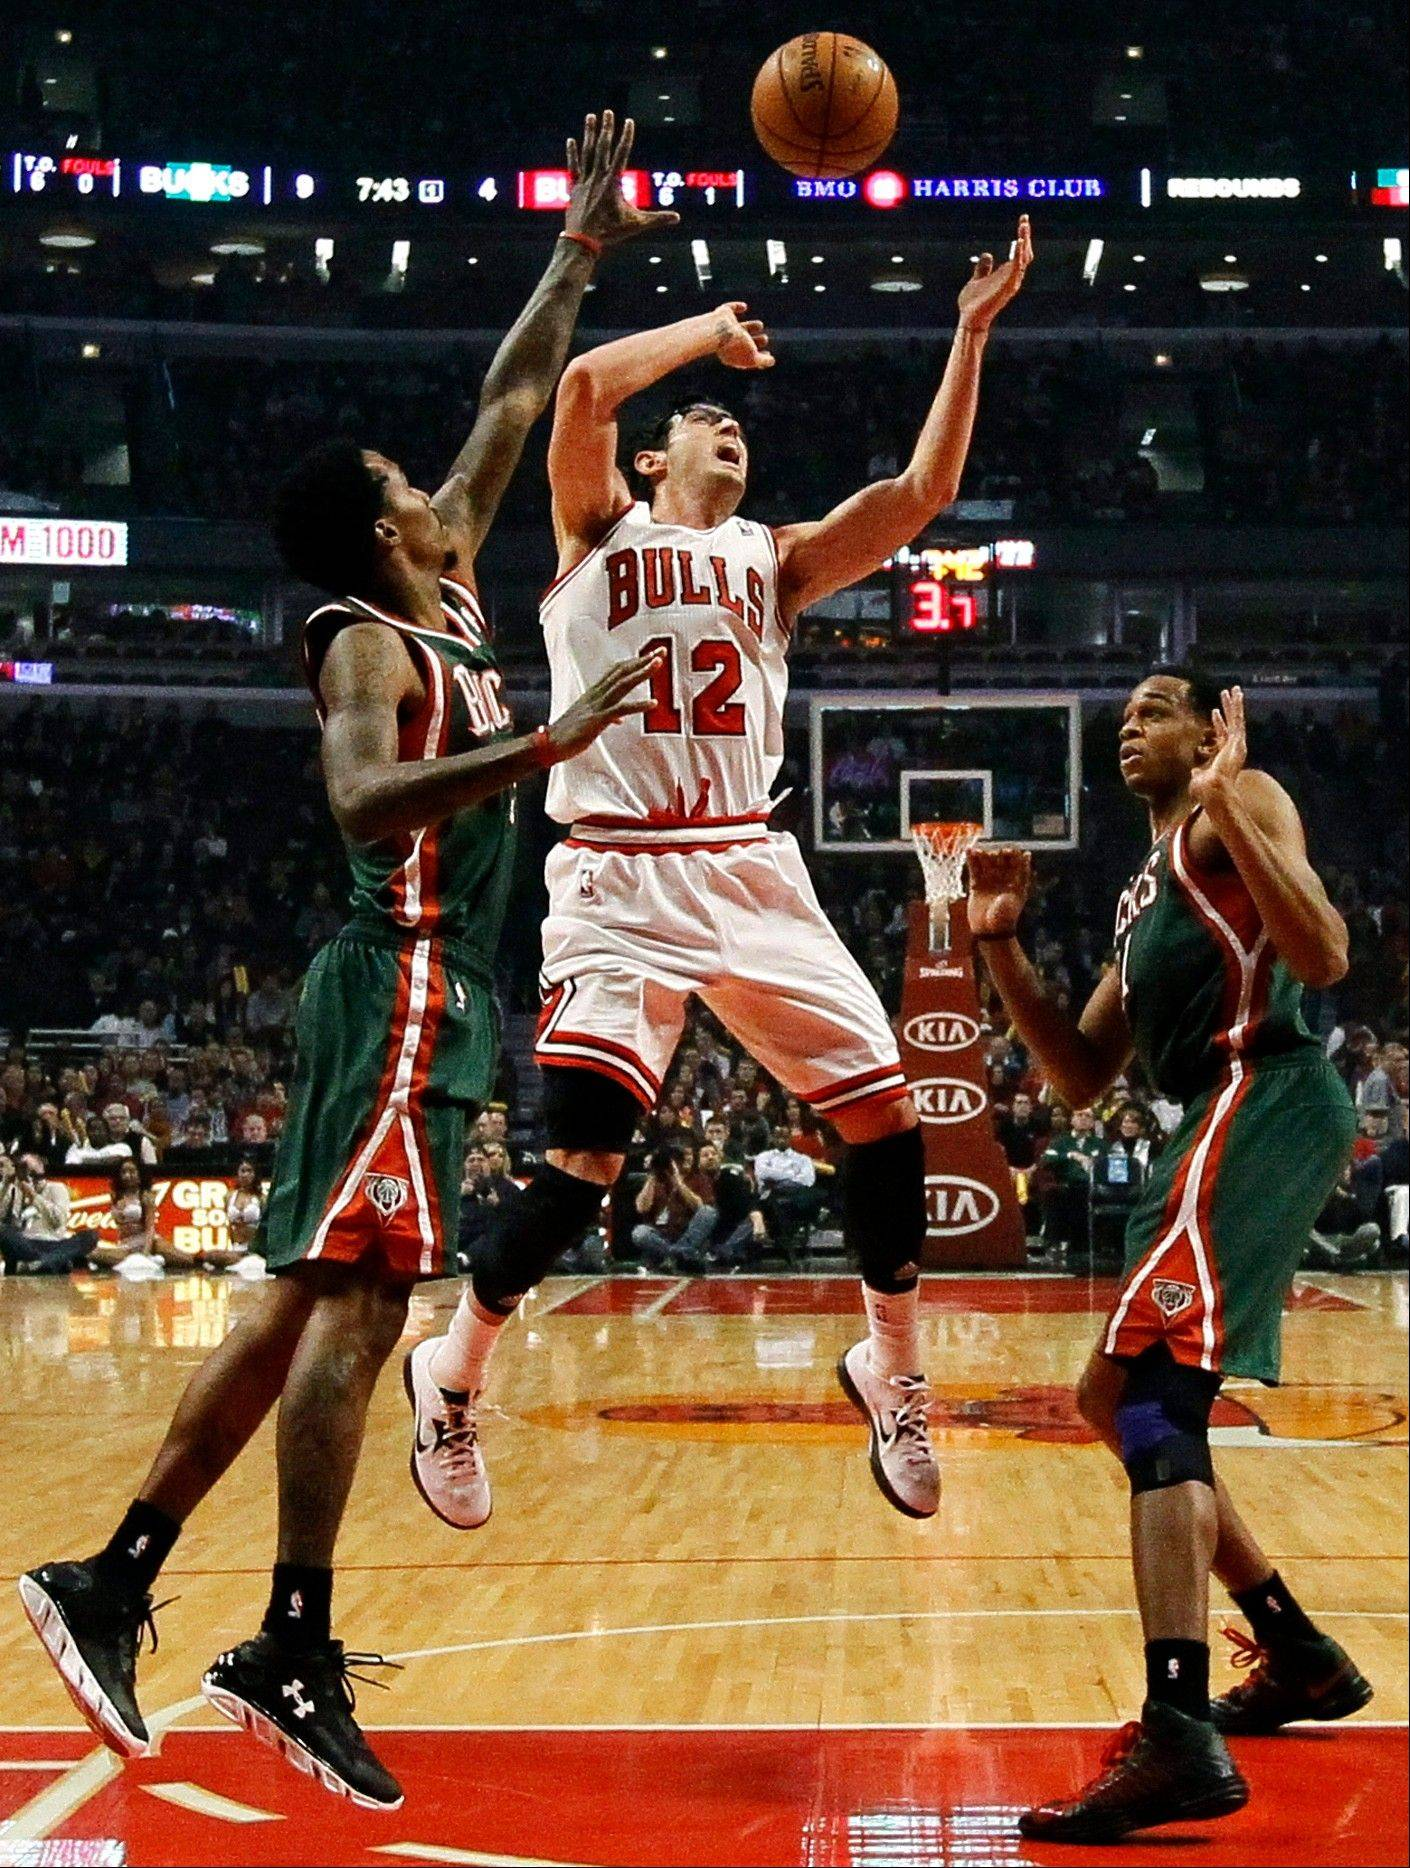 Bulls guard Kirk Hinrich was an unwitting part of a prank by the Bucks' Drew Gooden, who announced via Twitter that he would give his tickets to Monday's game to the first fan who sent a picture of a Bulls jersey in the toilet. The winning photo featured a Hinrich jersey.